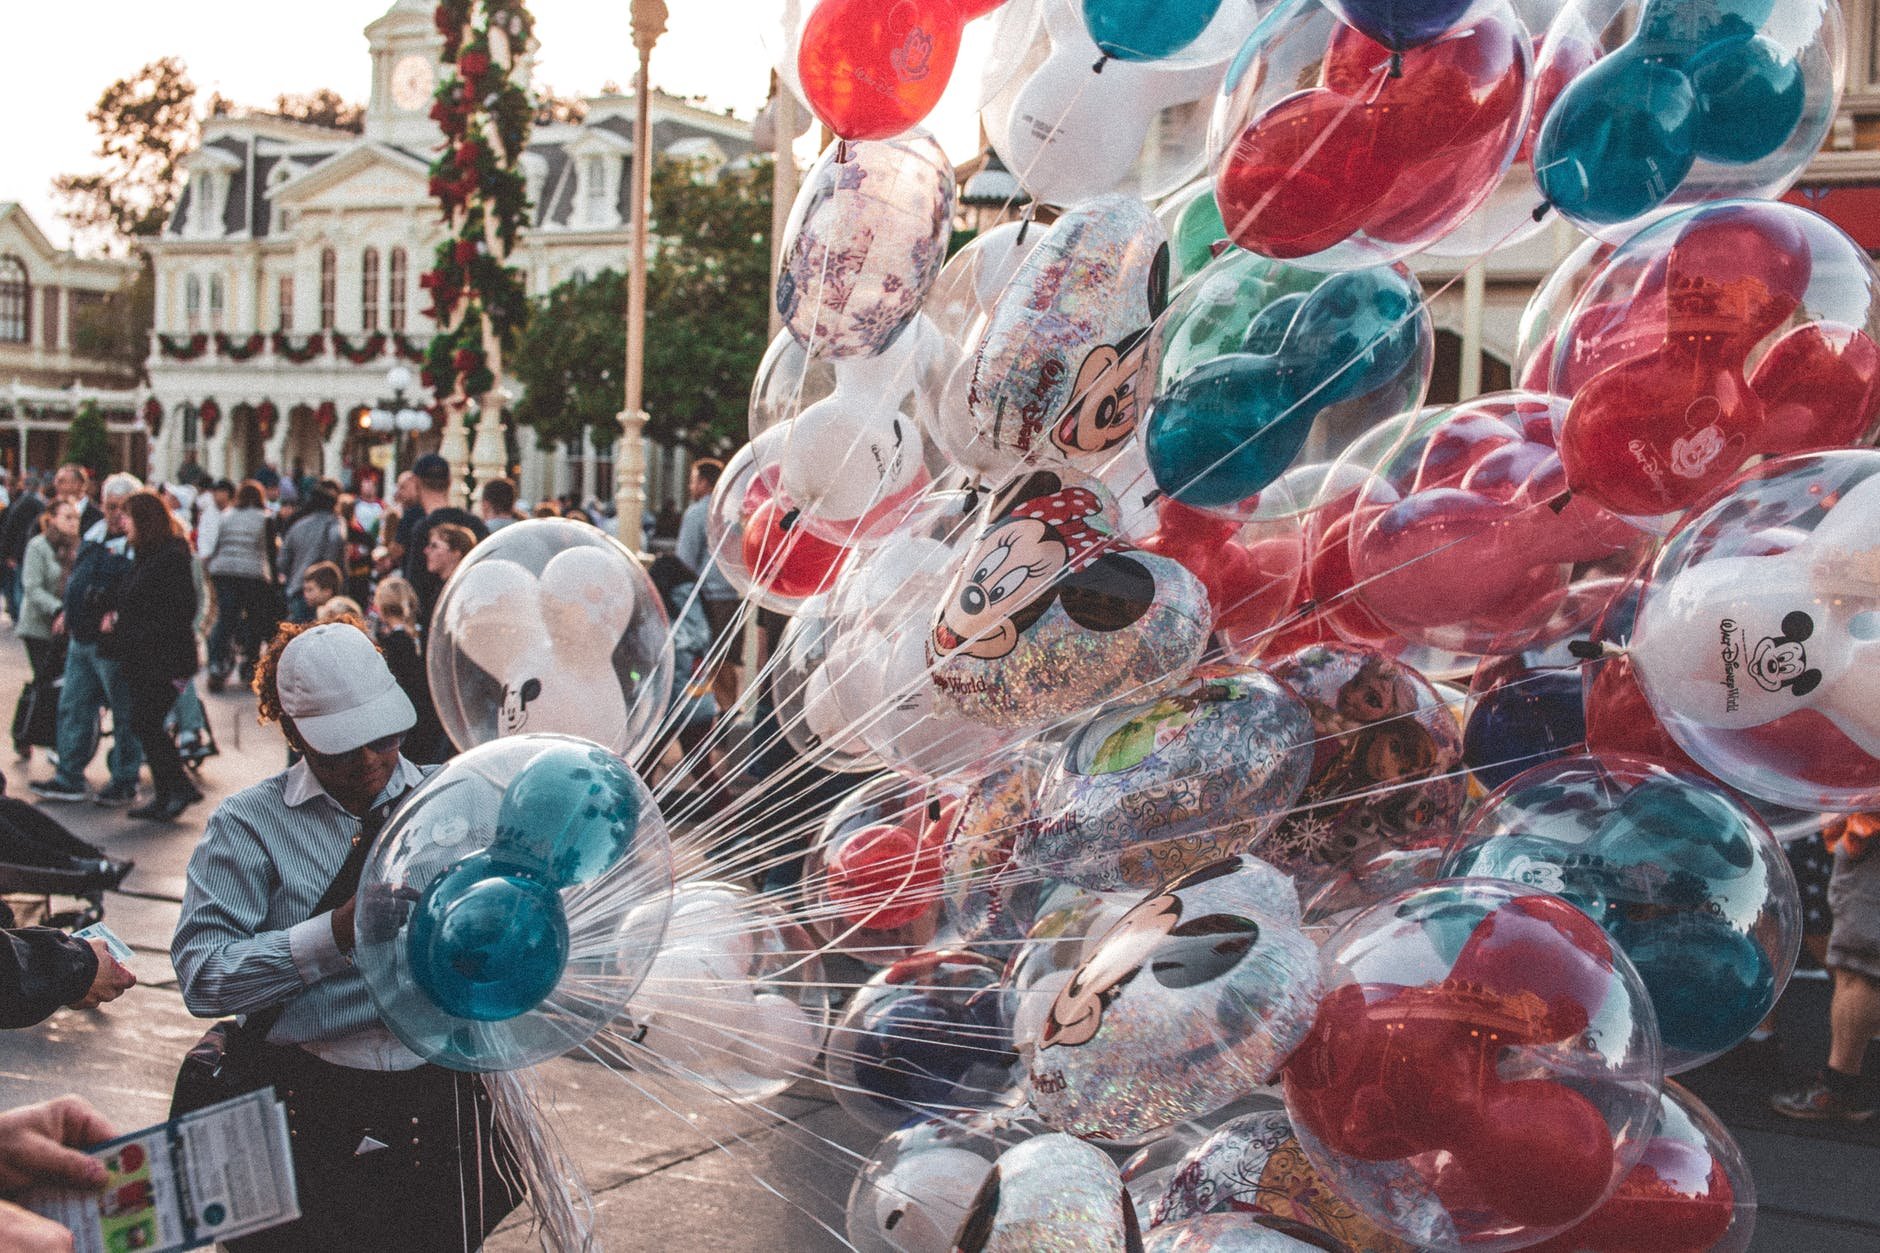 A selection of Disney balloons from Disney Land Pairs in a crowd full of people.